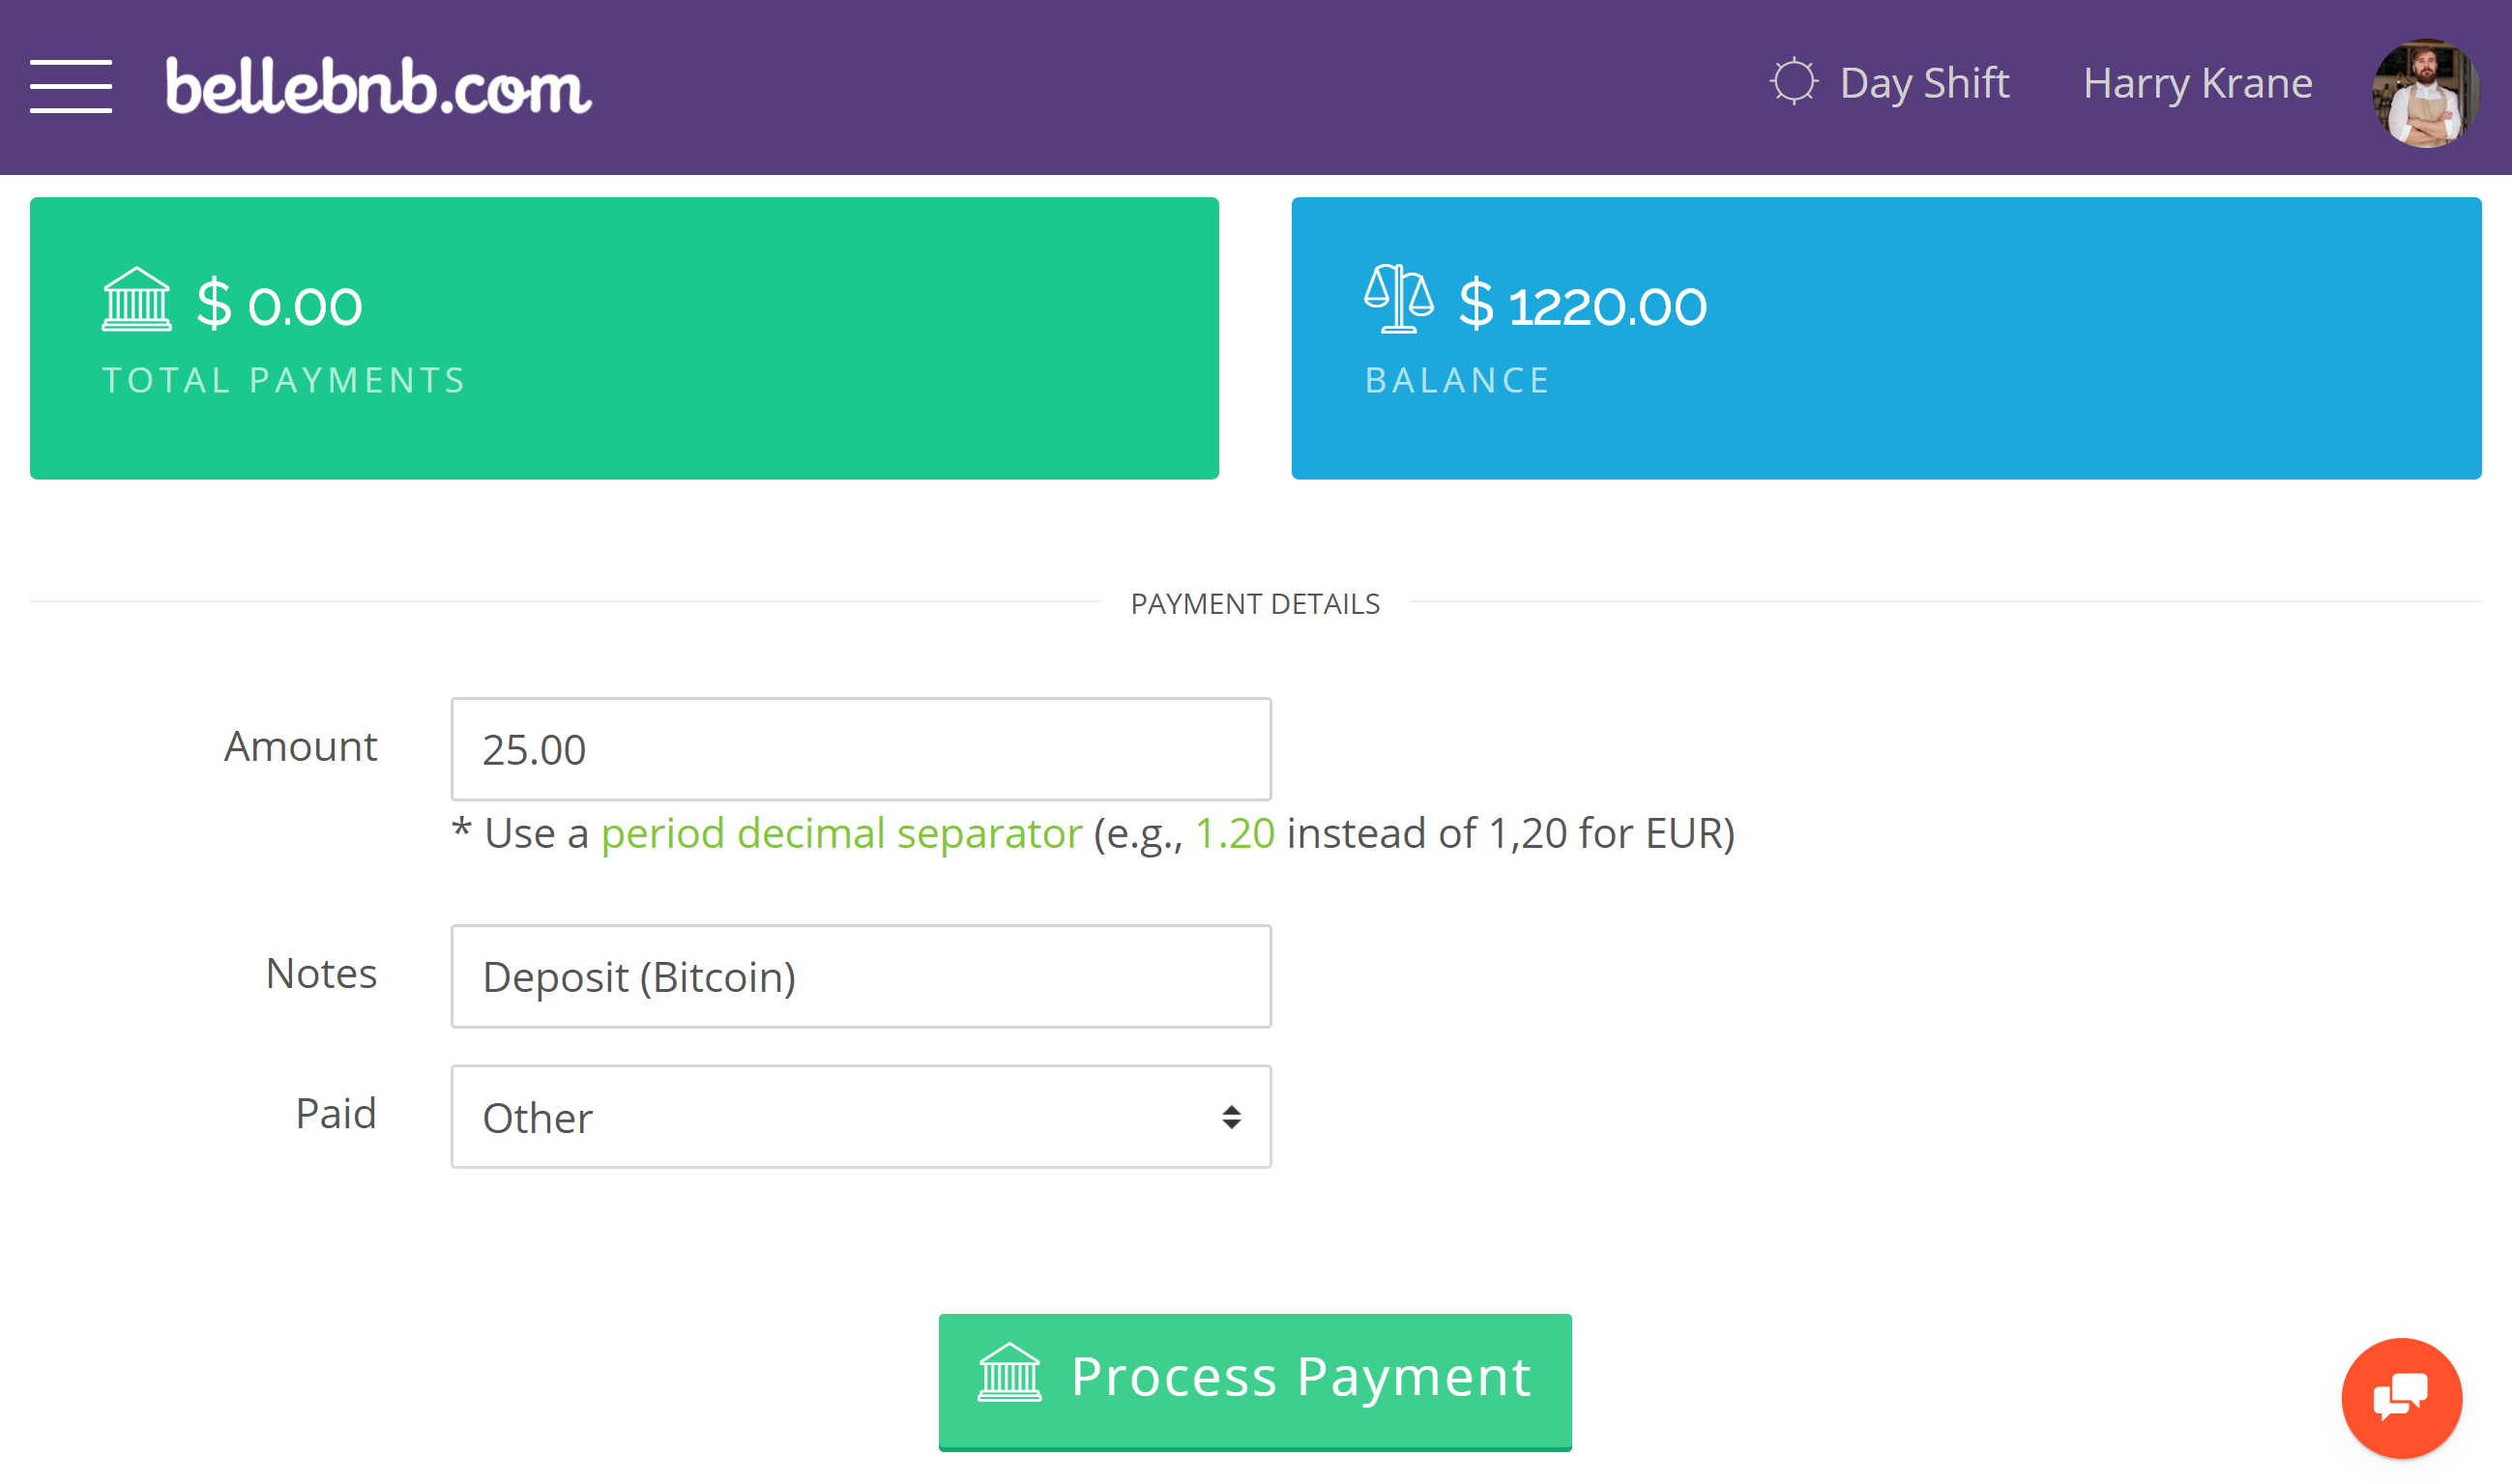 hotel Payments Workflow Hotel Payment Gateways Part I: Bellebnb Concepts You can connect your Payment Gateway to process live credit card payments directly from your Front Desk manager. Before you do this, you should be familiar with a few definitions and concepts found in this blog post. Hotel Management Software in the Cloud